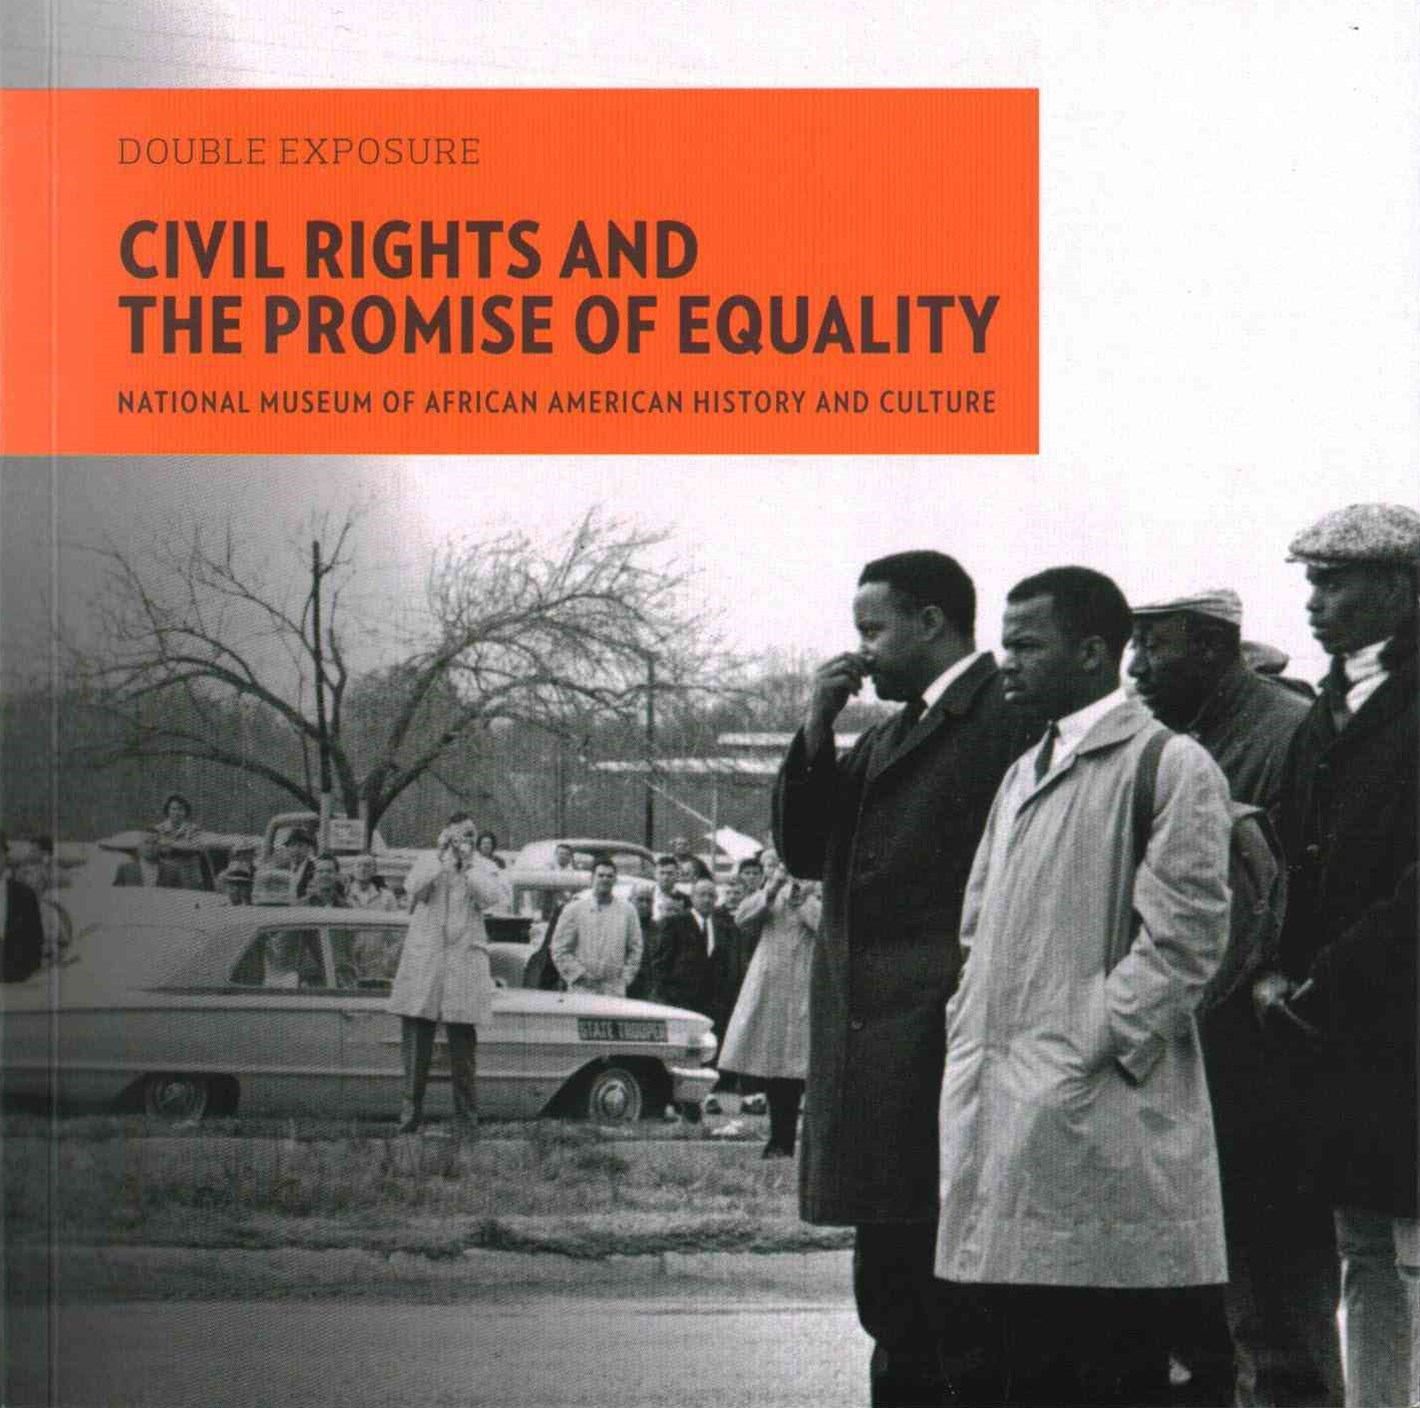 Double Exposure V 2 - Civil Rights and the Promise of Equality